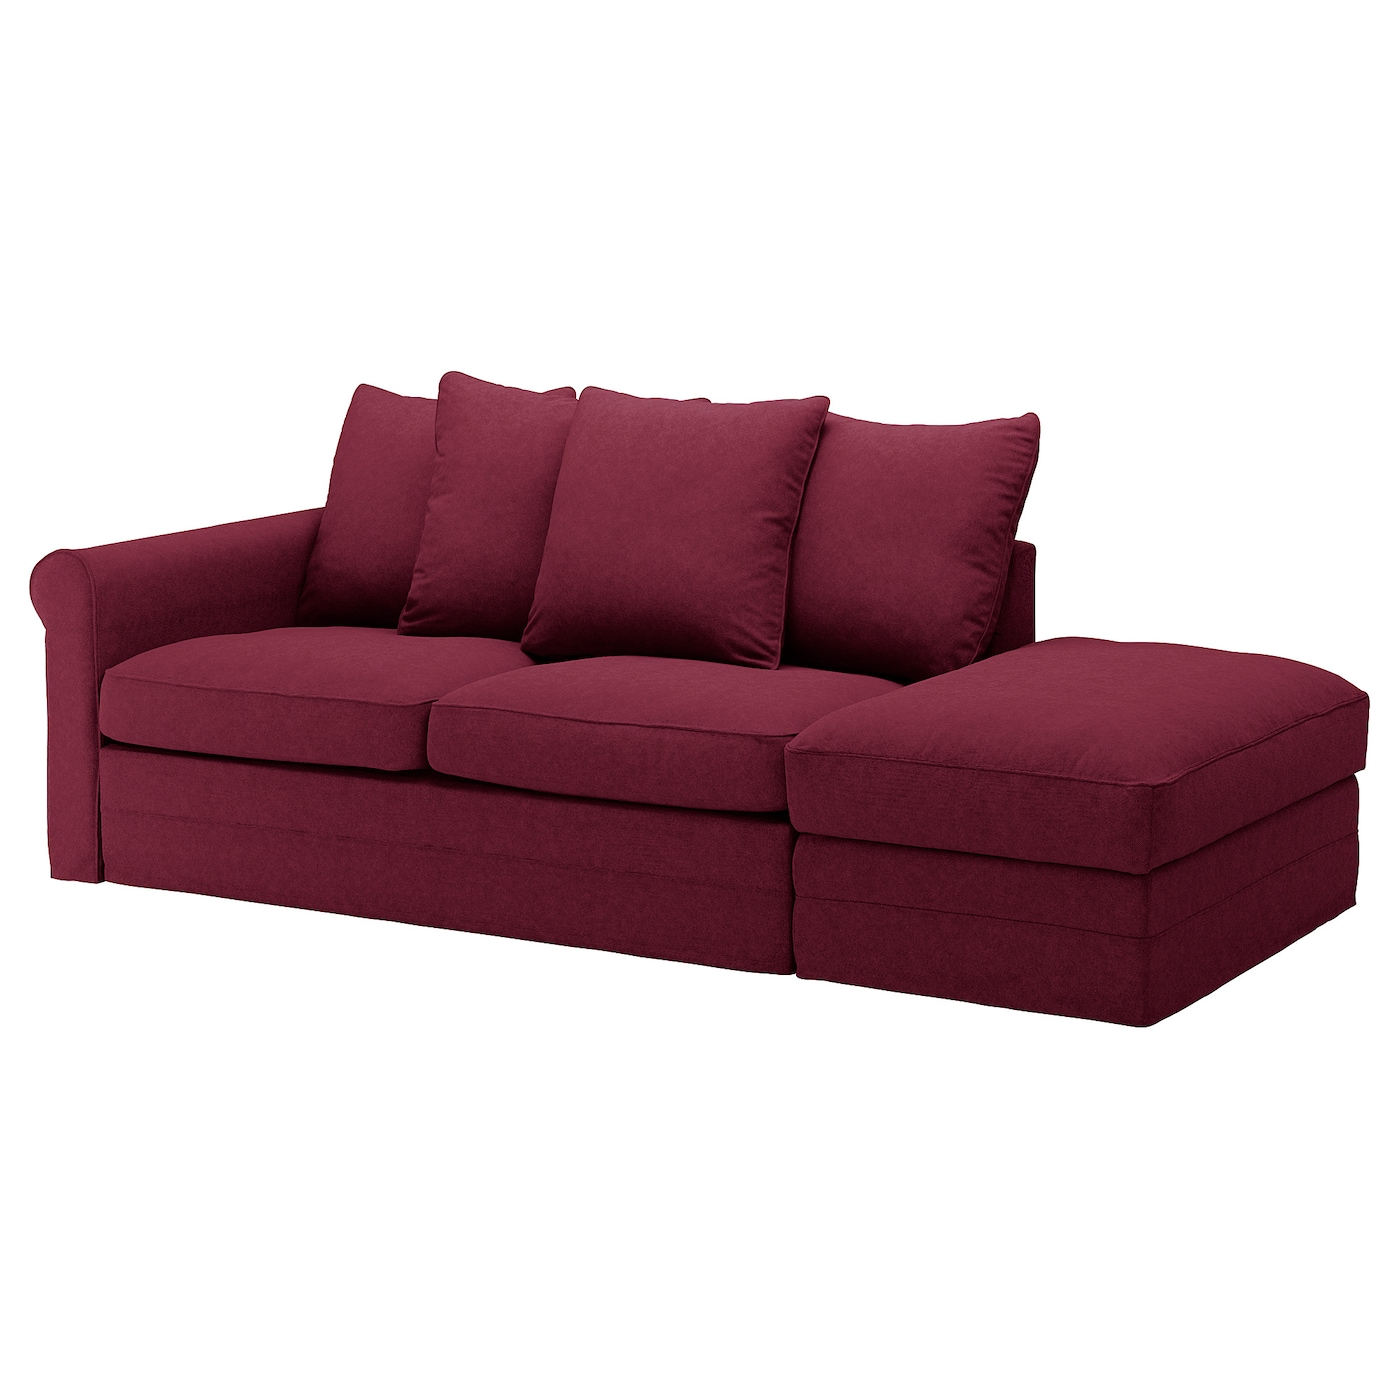 IKEA GRÖNLID 3-seat sofa-bed 10 year guarantee. Read about the terms in the guarantee brochure.